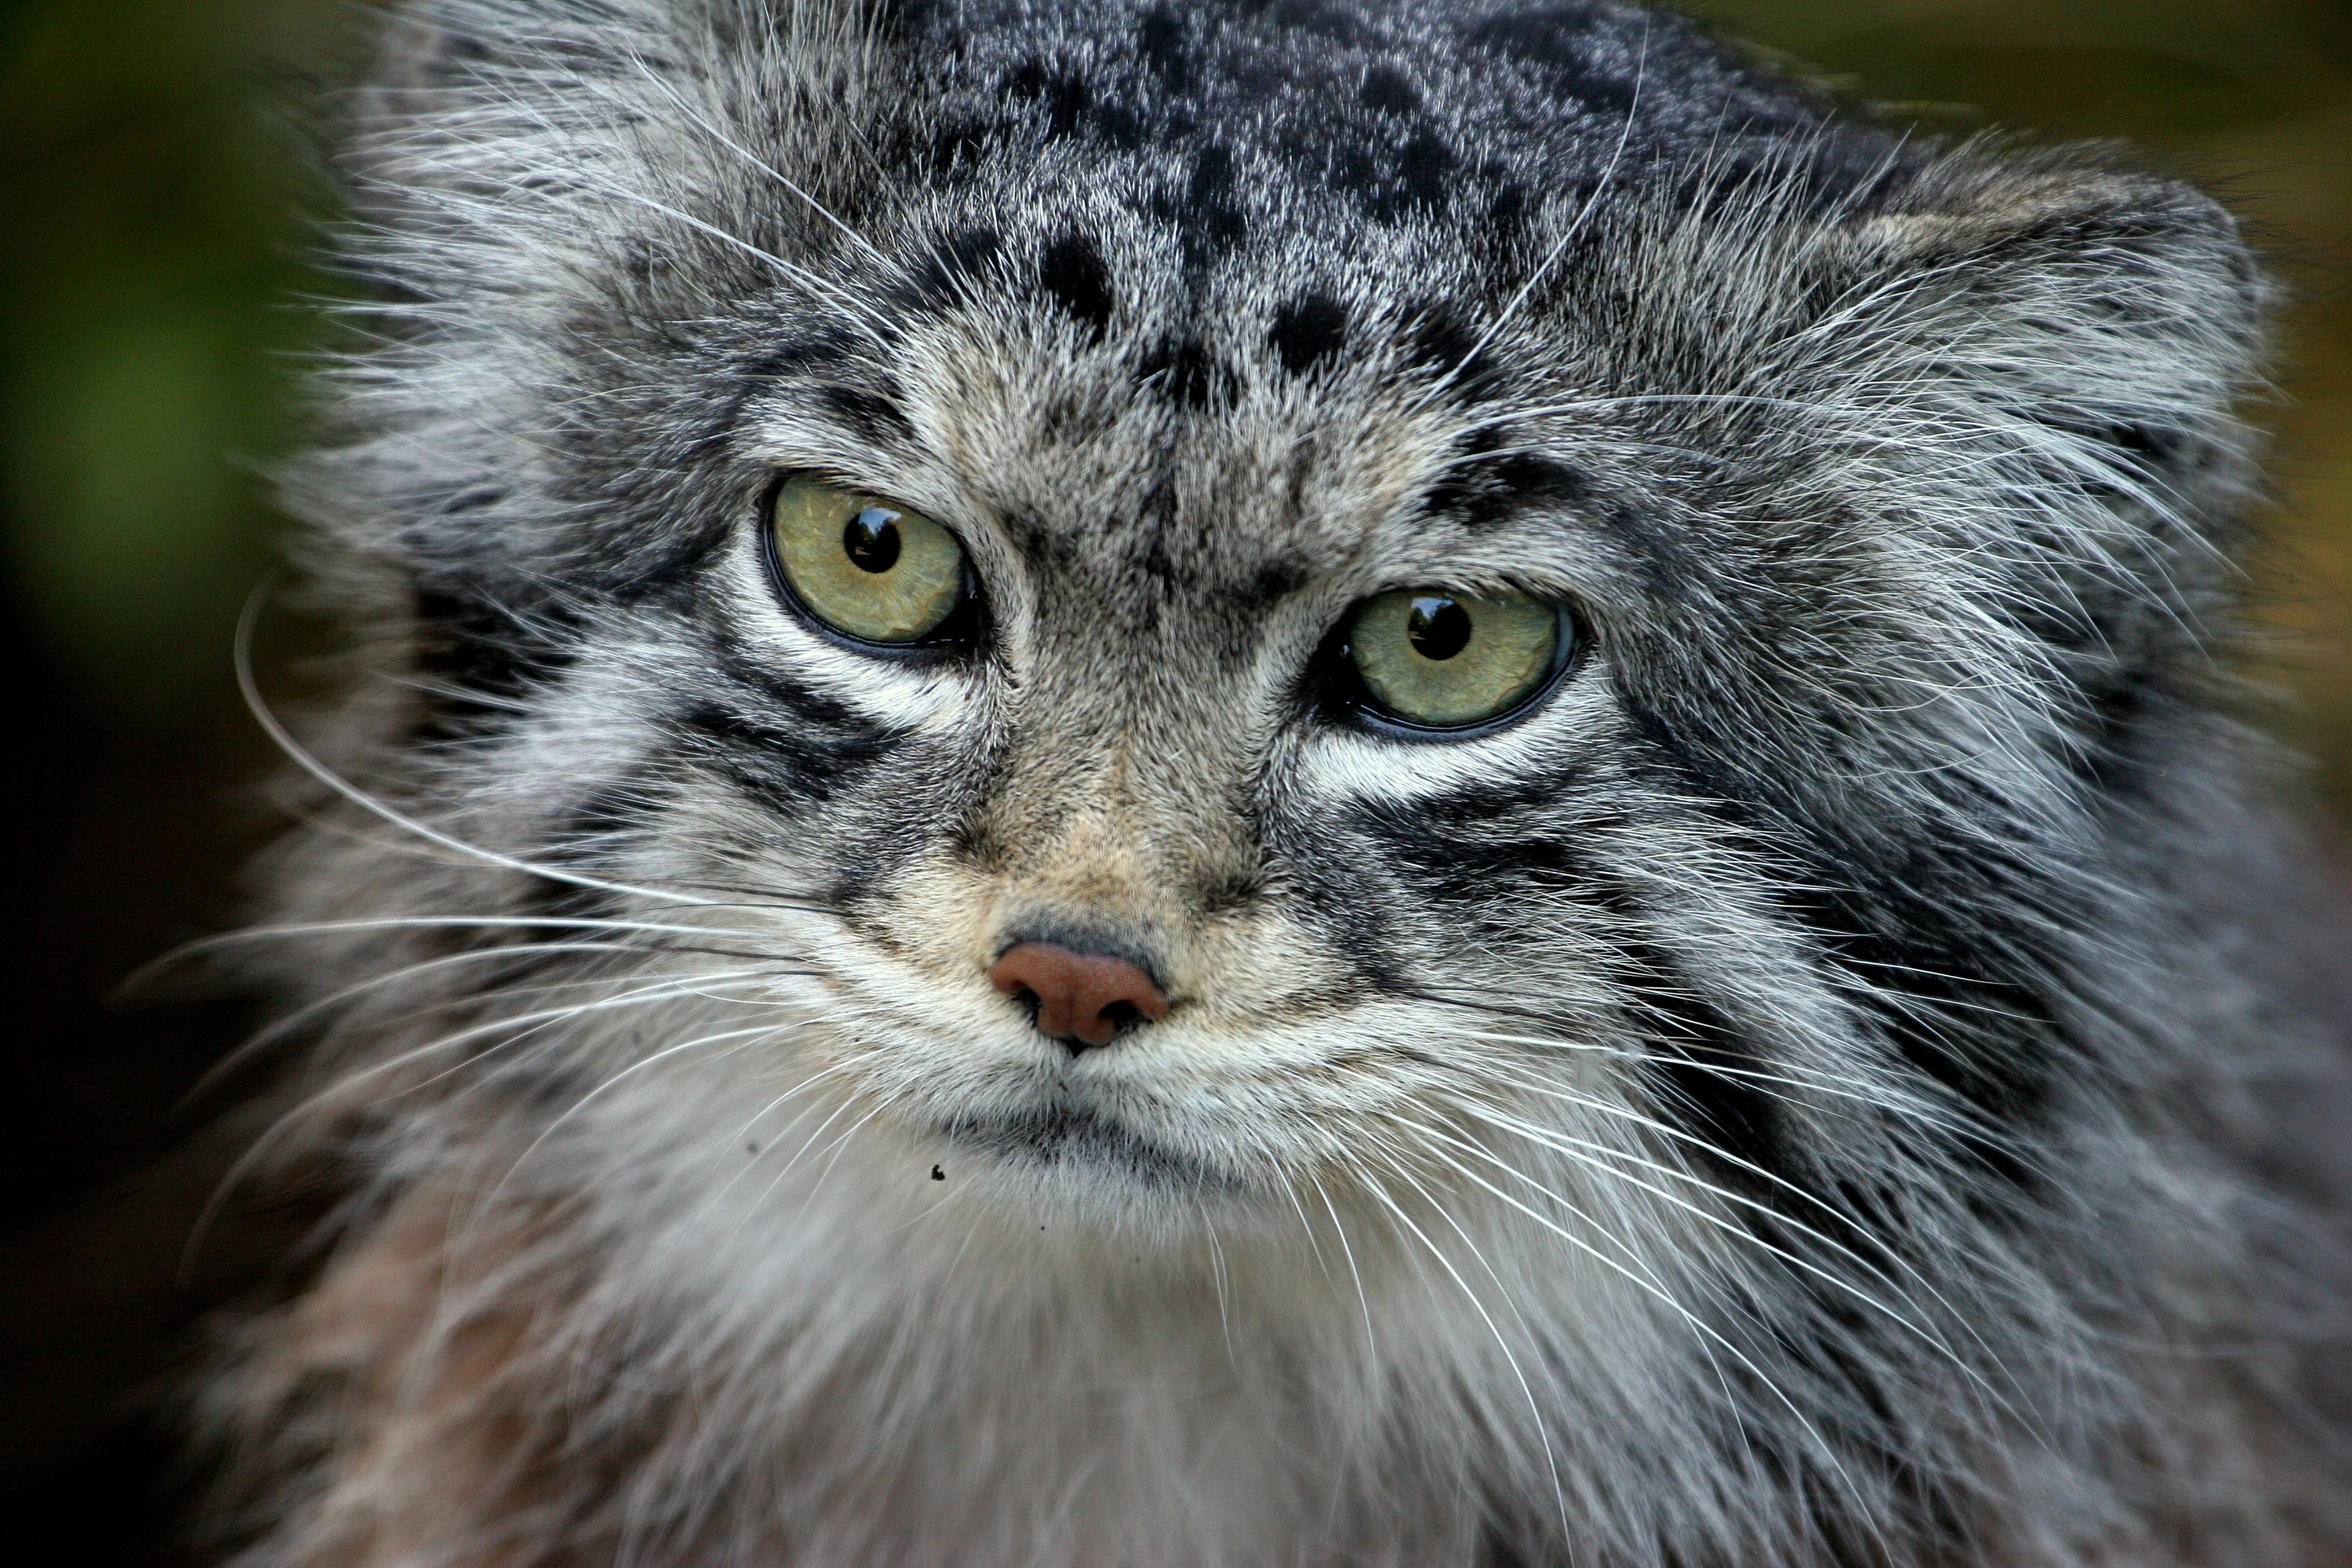 http://upload.wikimedia.org/wikipedia/commons/9/93/Pallas_cat.JPG